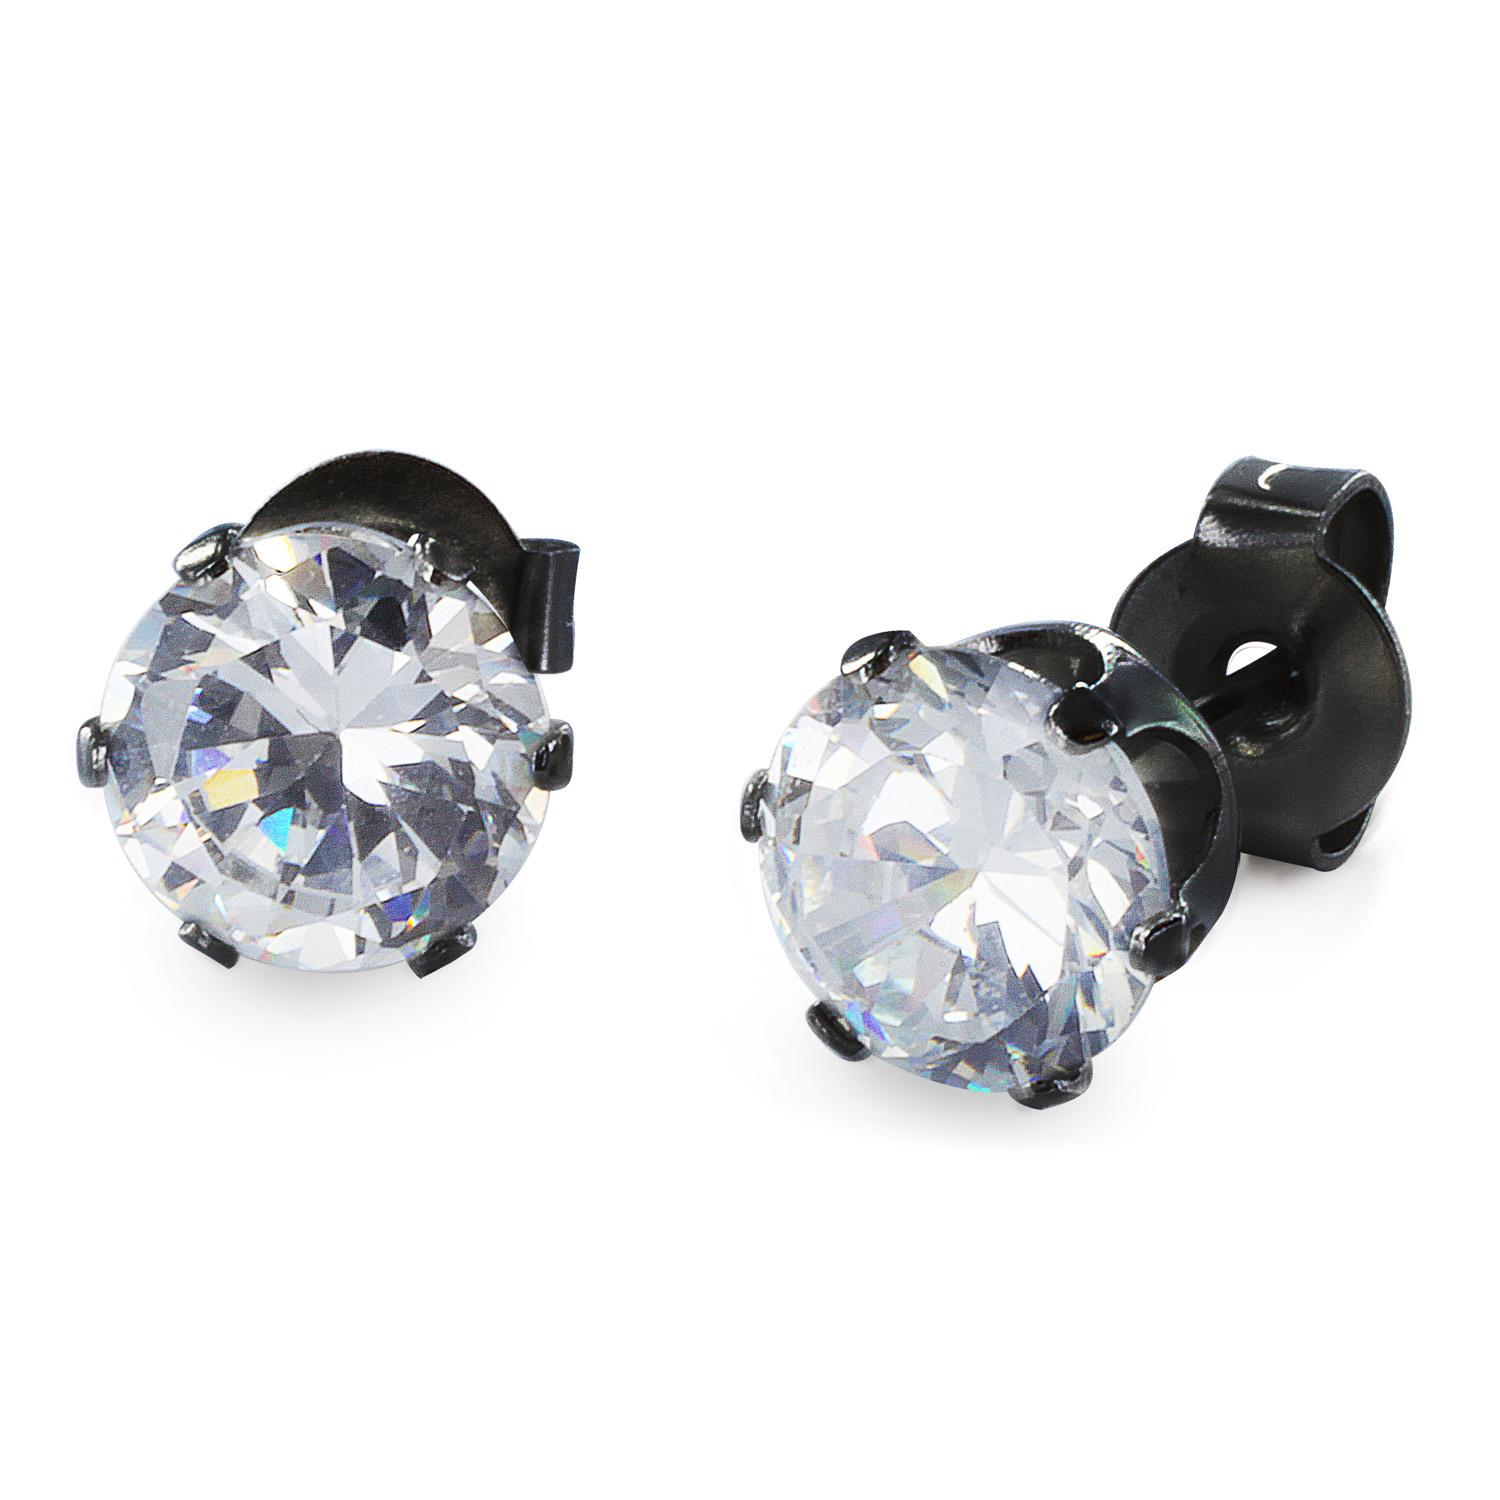 Black Plated Stainless Steel Stud Earrings with Round Clear CZ - 5 mm